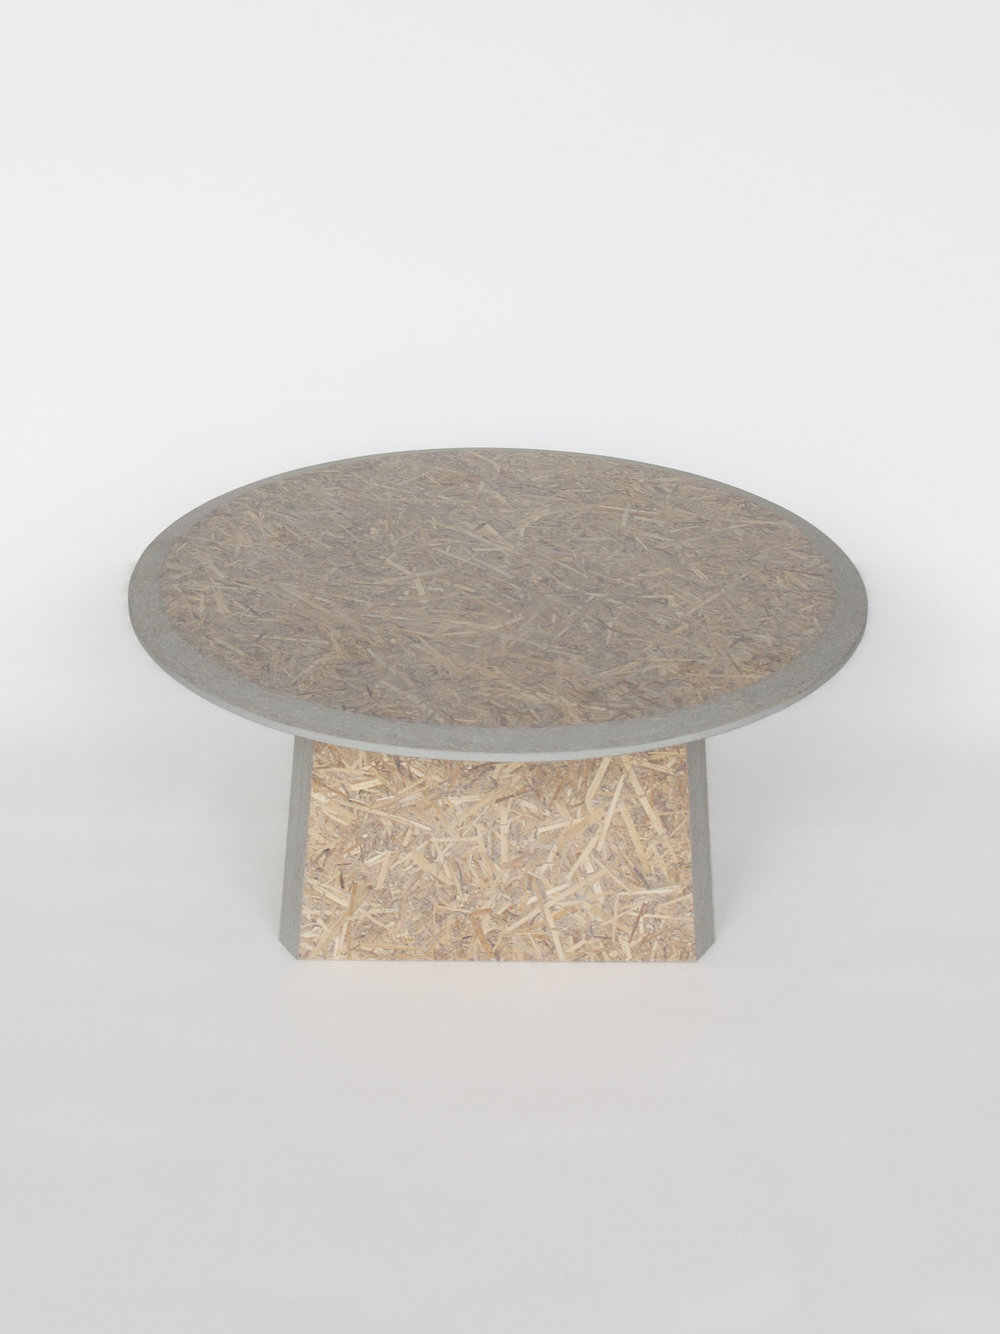 Straw sidetables -gray_high angle view- David Derksen Design.jpg